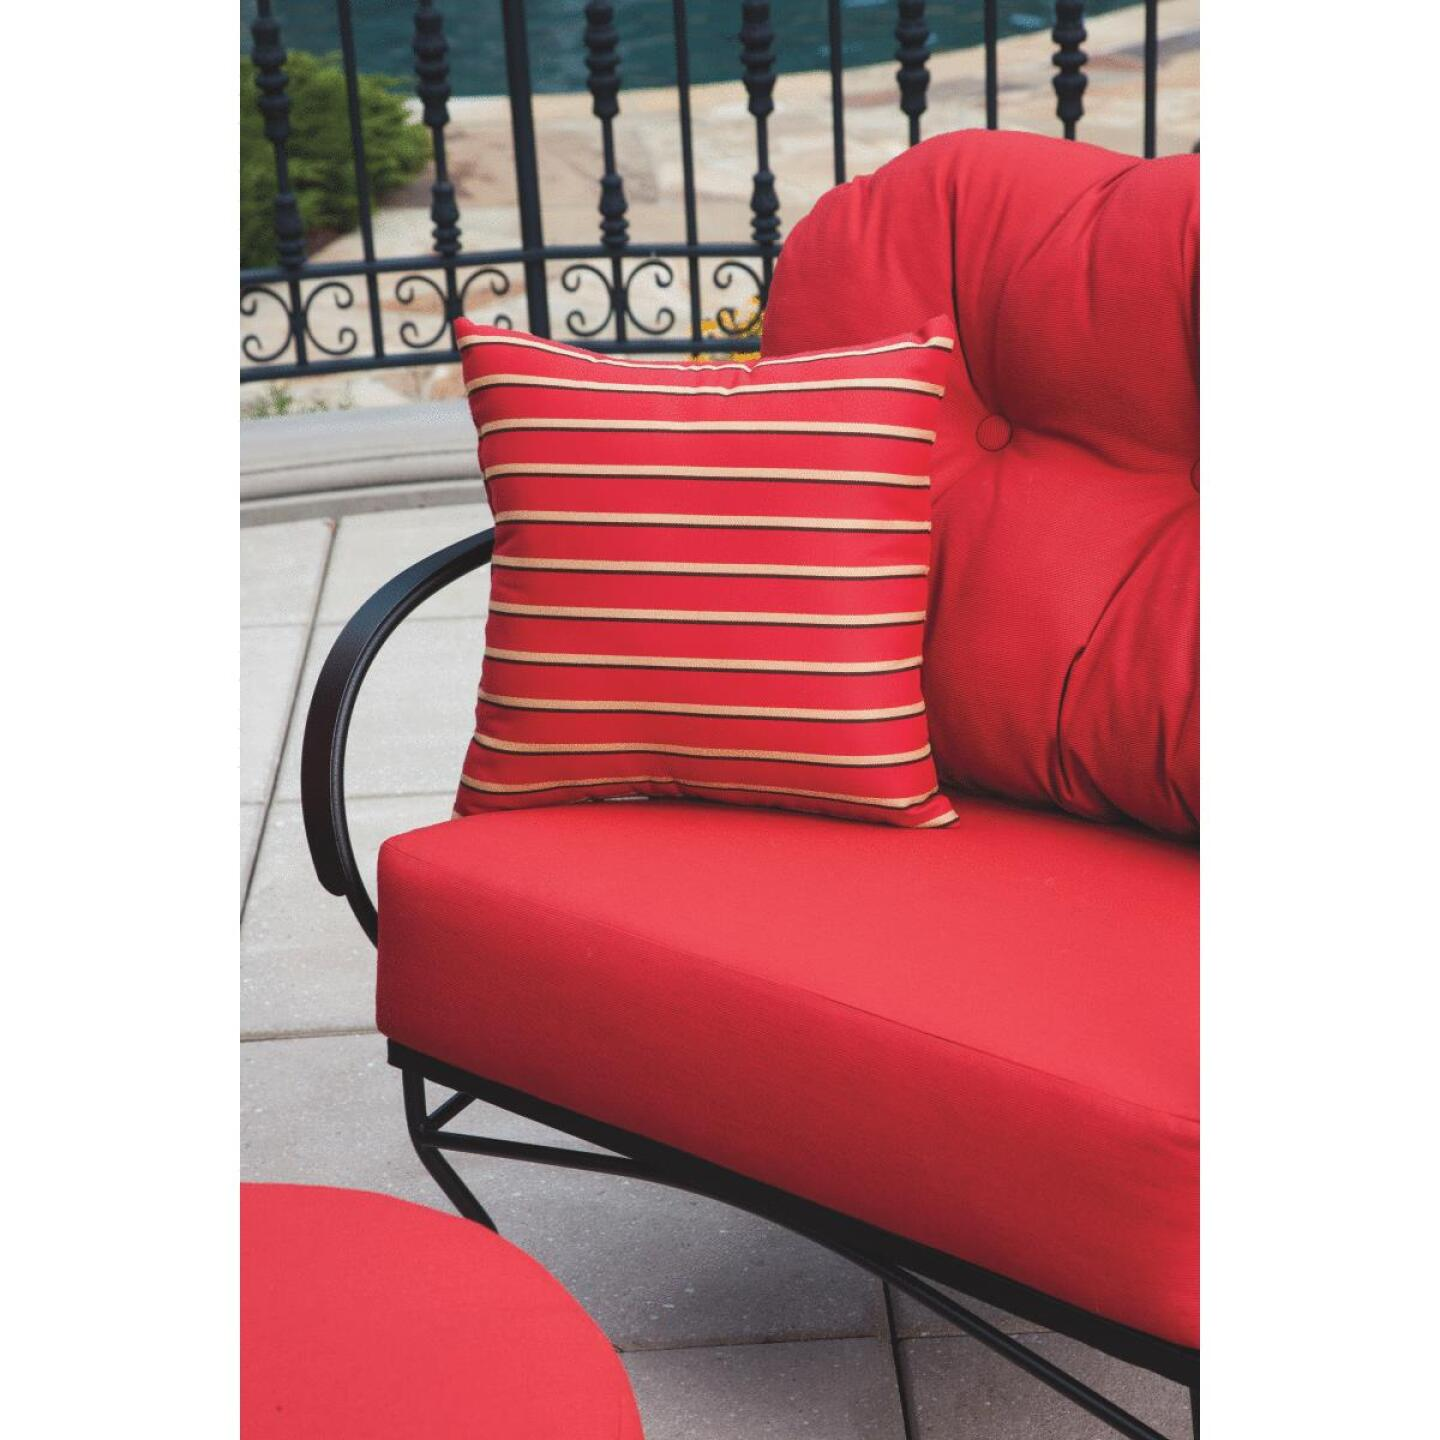 Brantley 3-Piece Steel Chat Set with Red Cushions Image 2